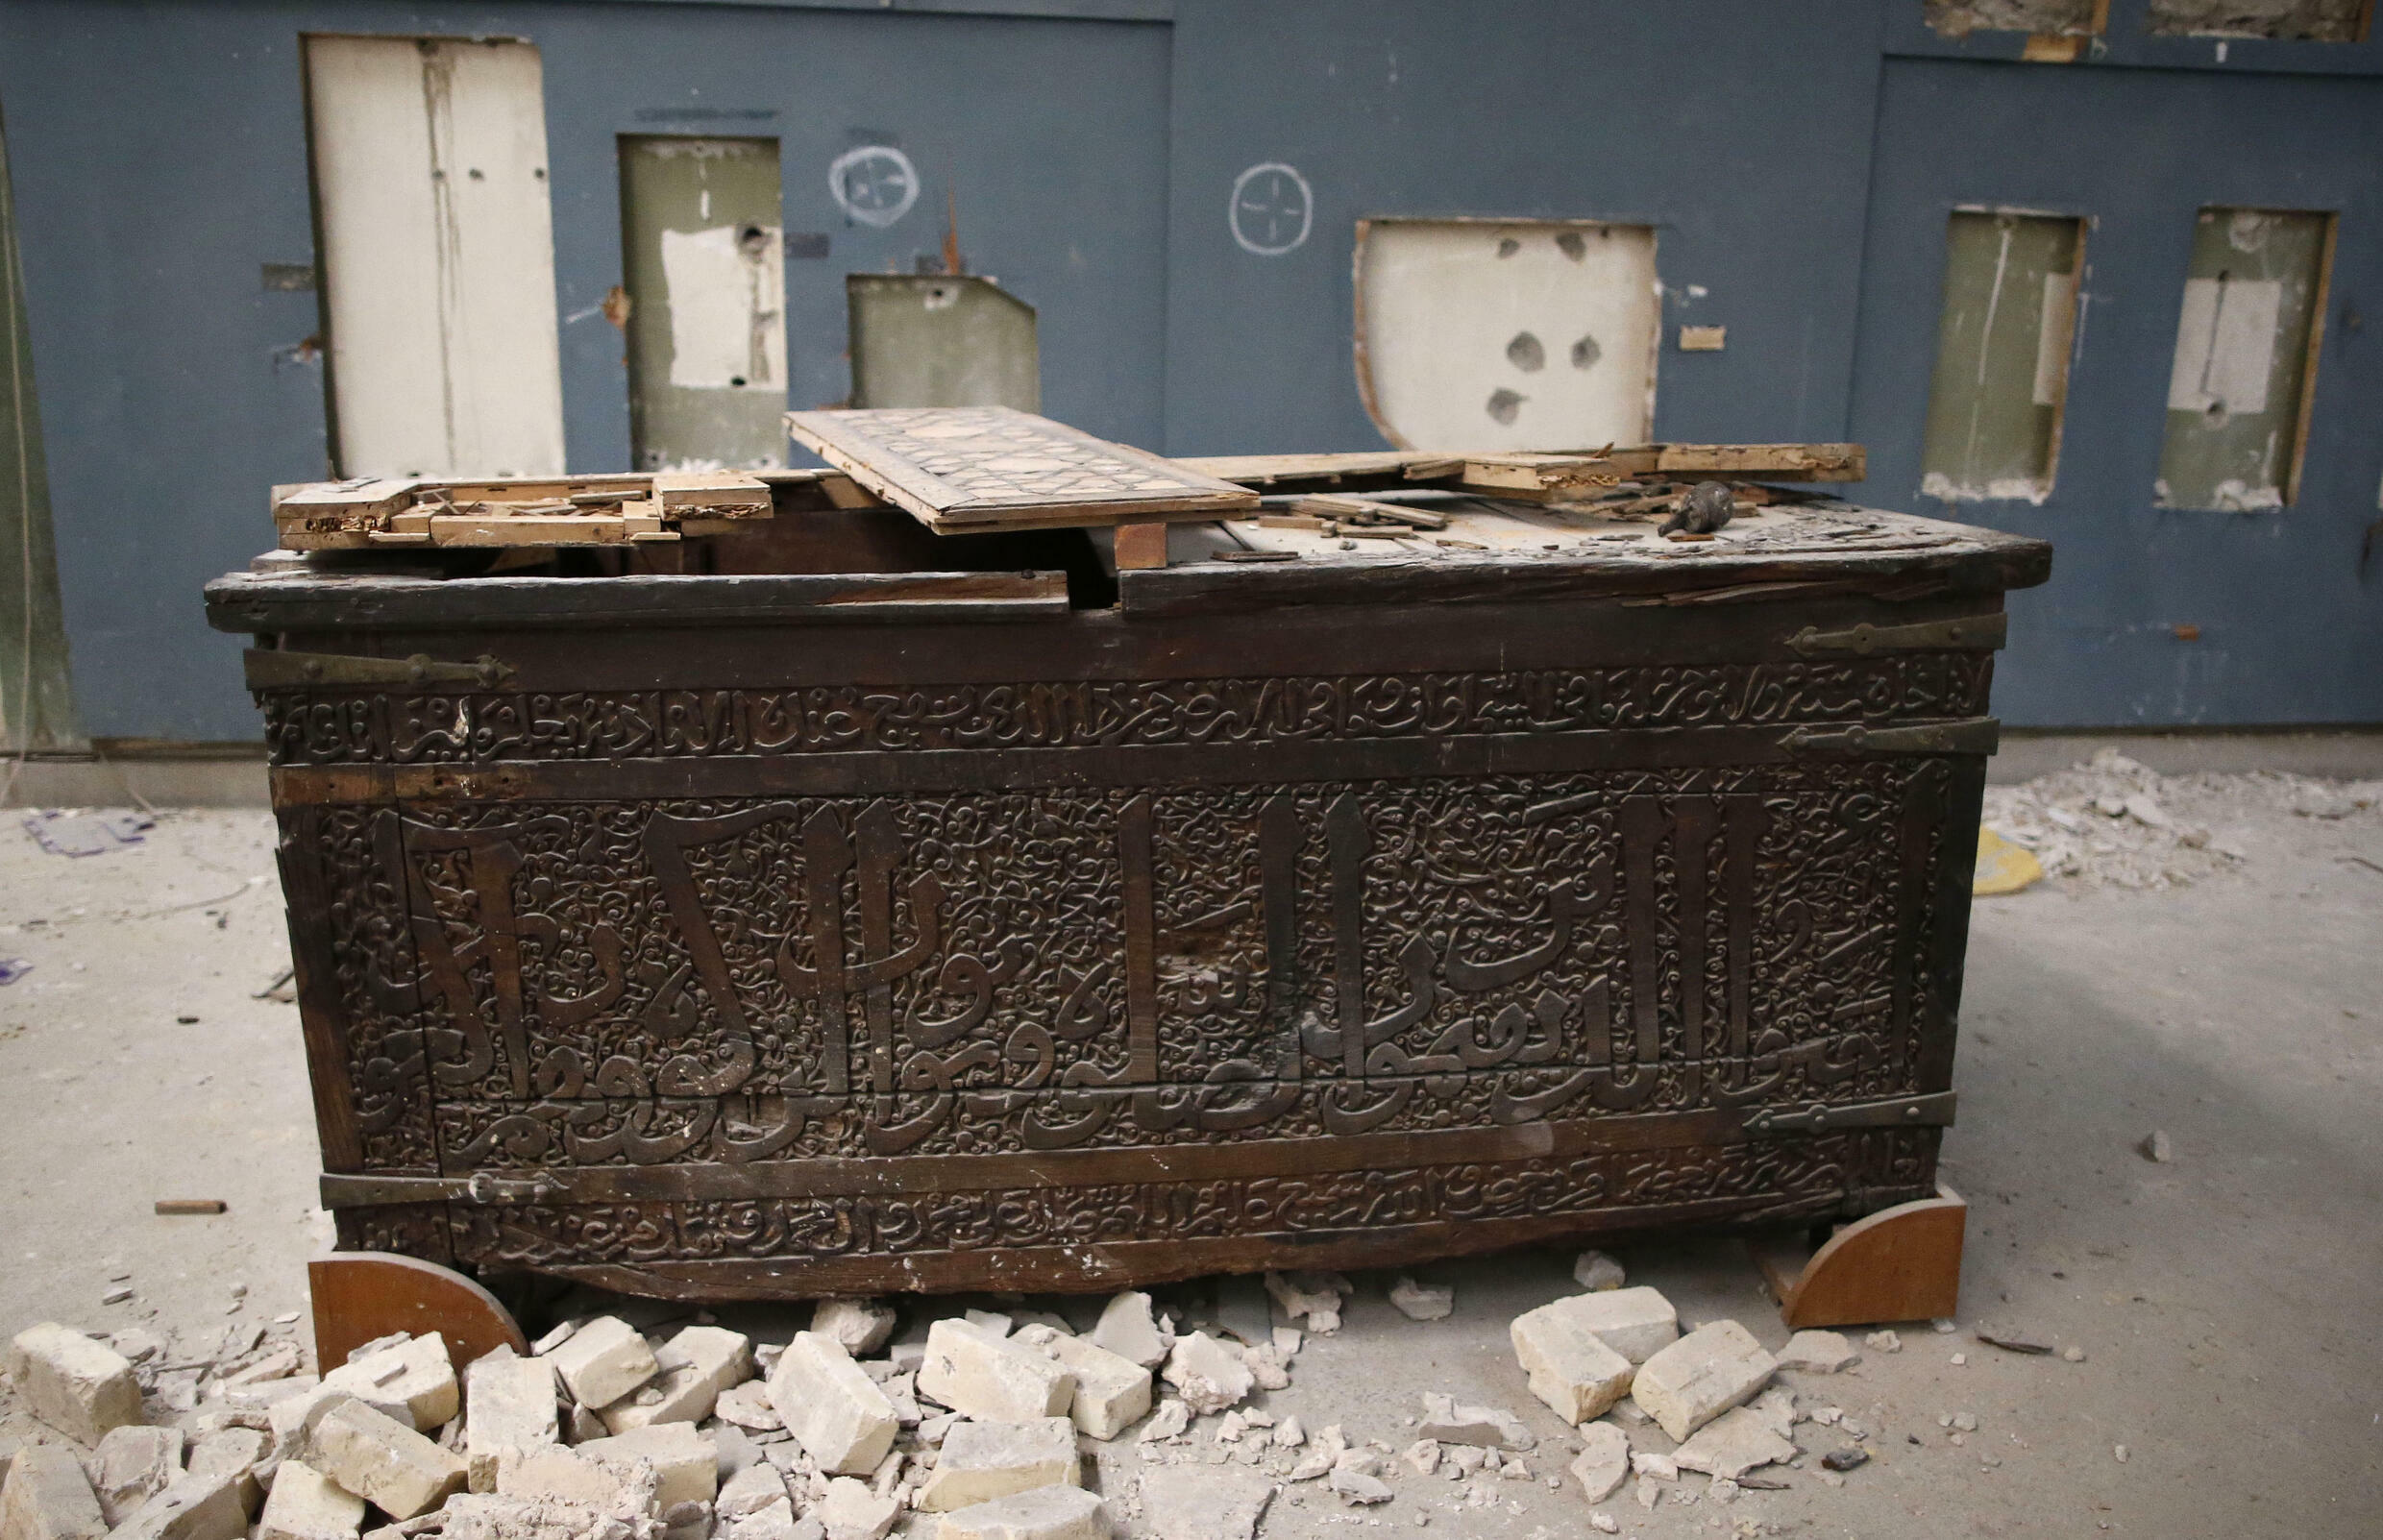 The Islamic State group's occupation of the ancient Iraqi city of Mosul was marked by iconic images of damage to priceless artifacts at the city's museum